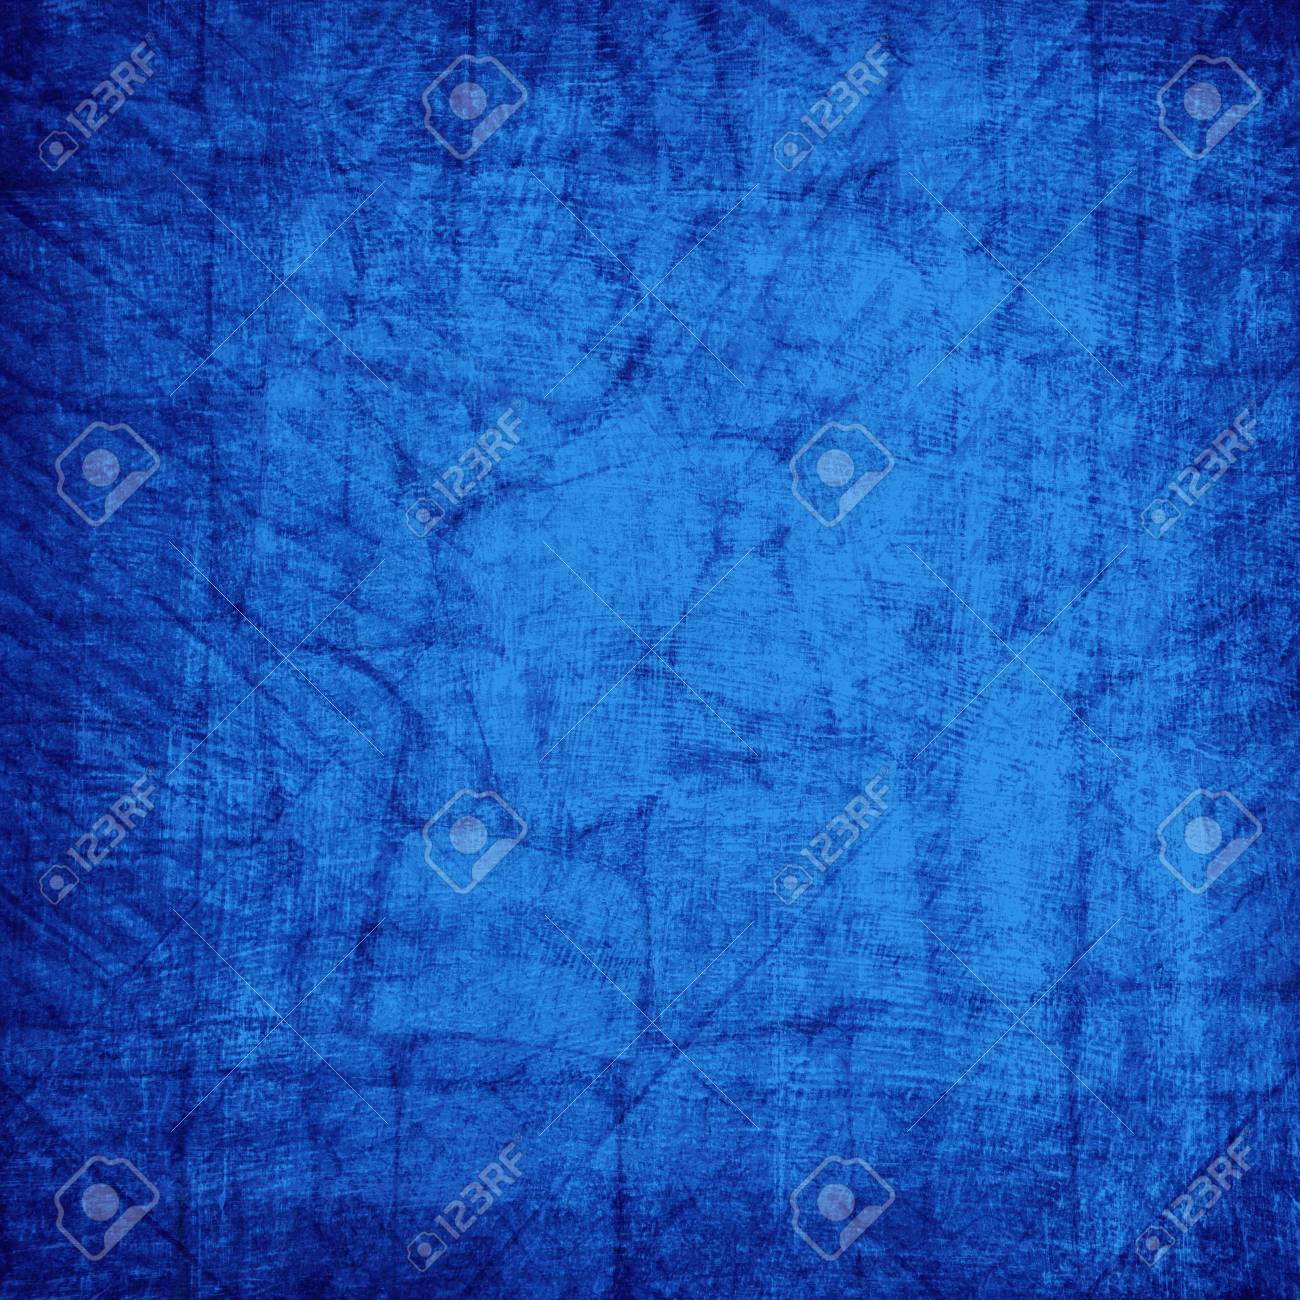 Stock Photo - Textured blue background